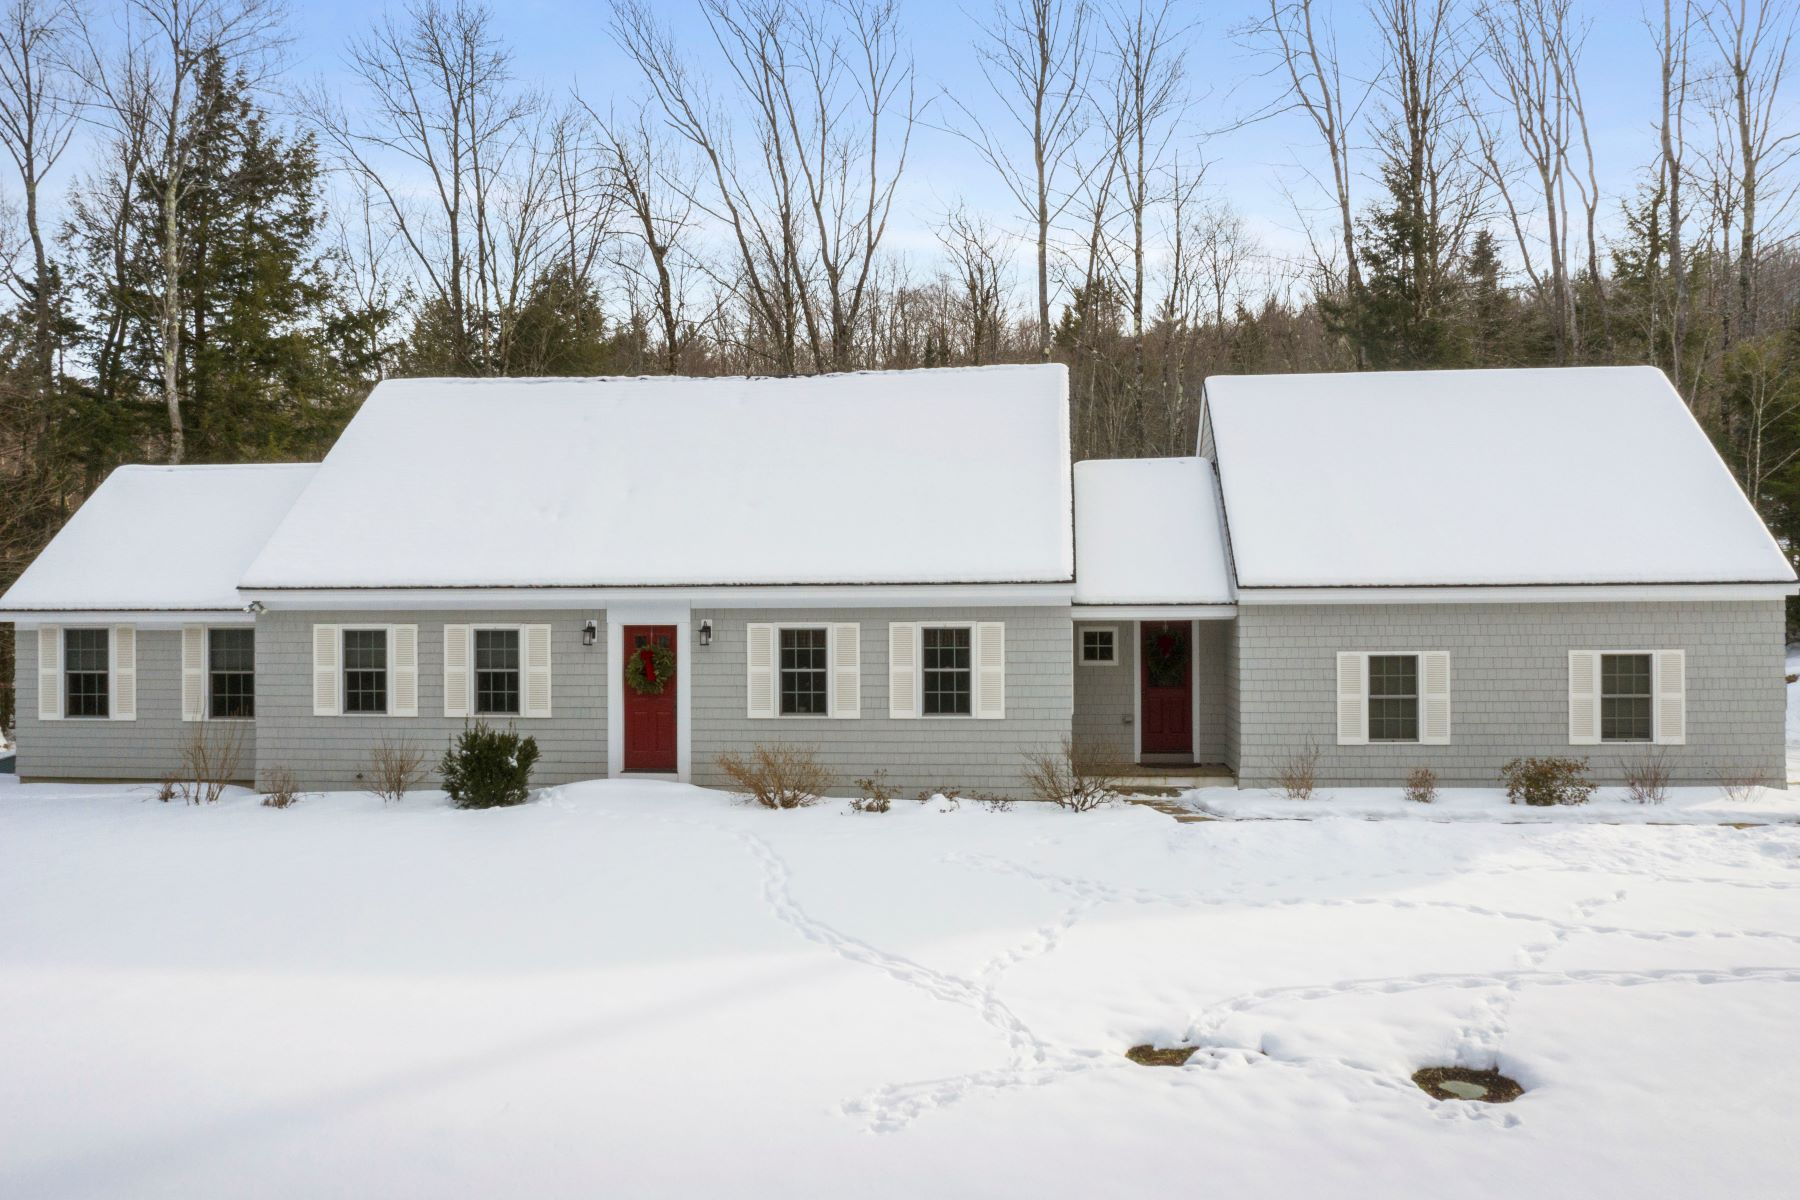 Single Family Homes for Sale at Three Bedroom Cape in Grantham 137 Woodland Heights Grantham, New Hampshire 03753 United States